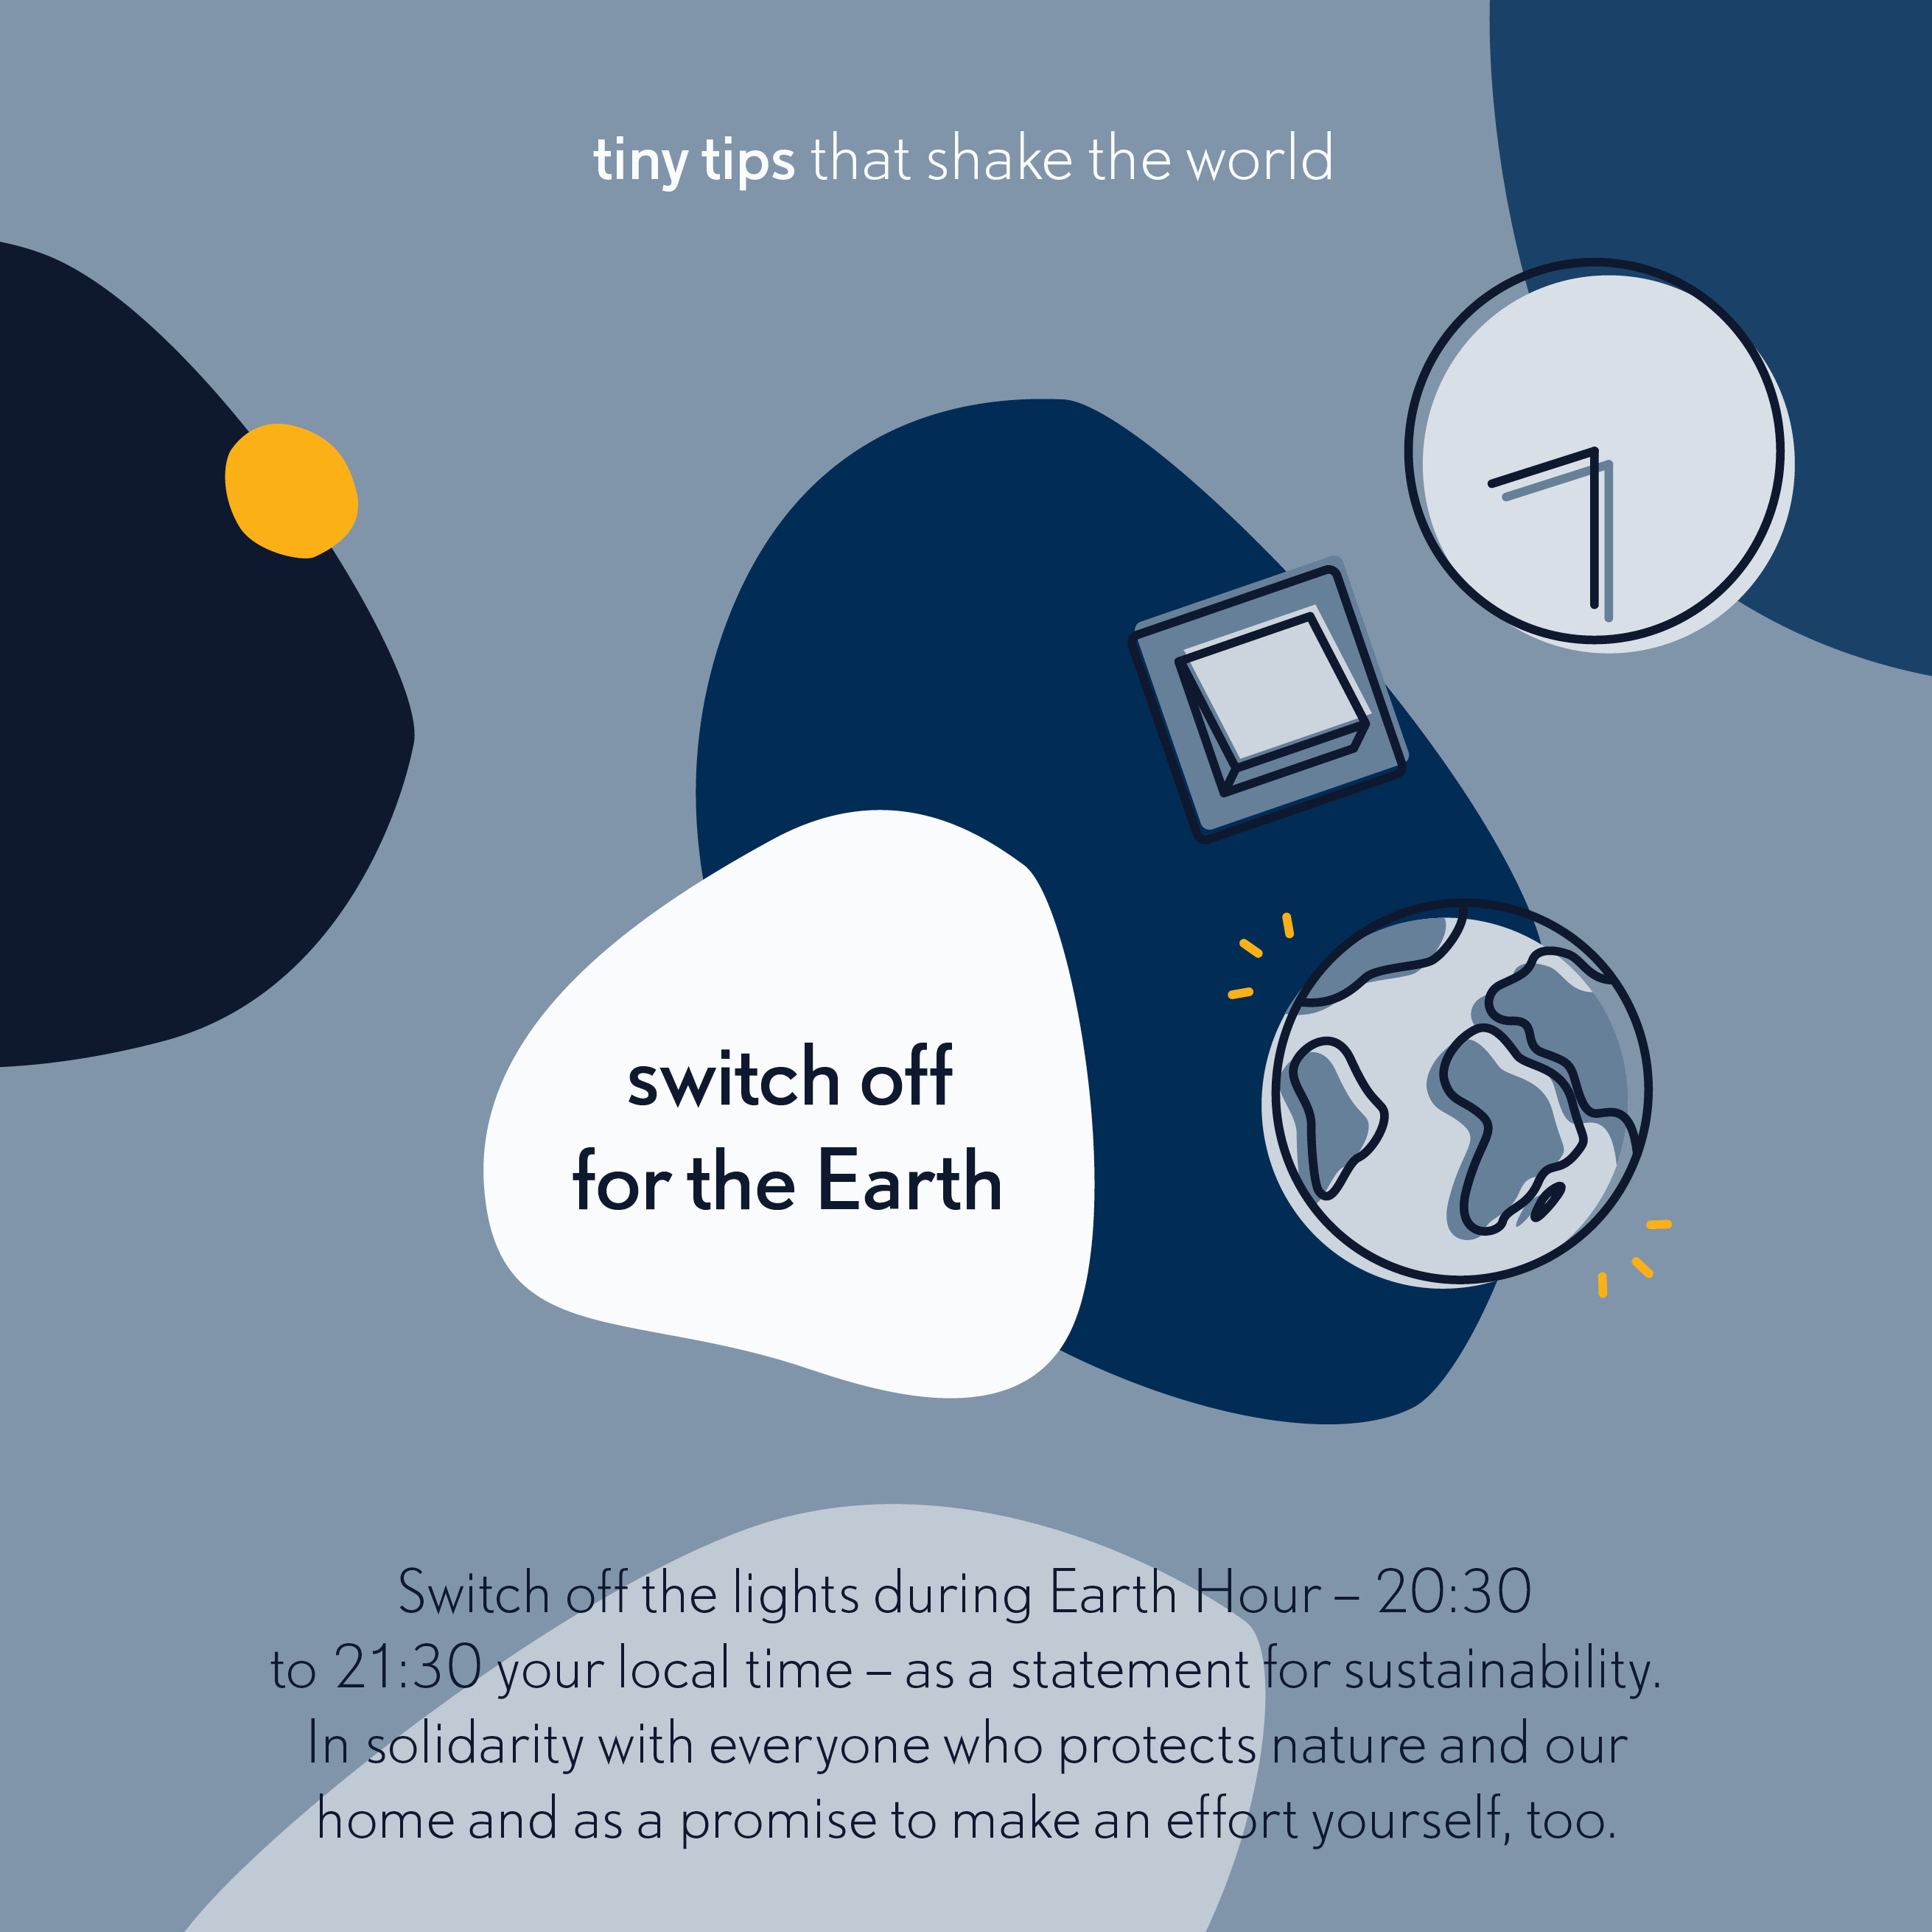 Switch off for the Earth - Earth Hour - Tiny tips that shake the world